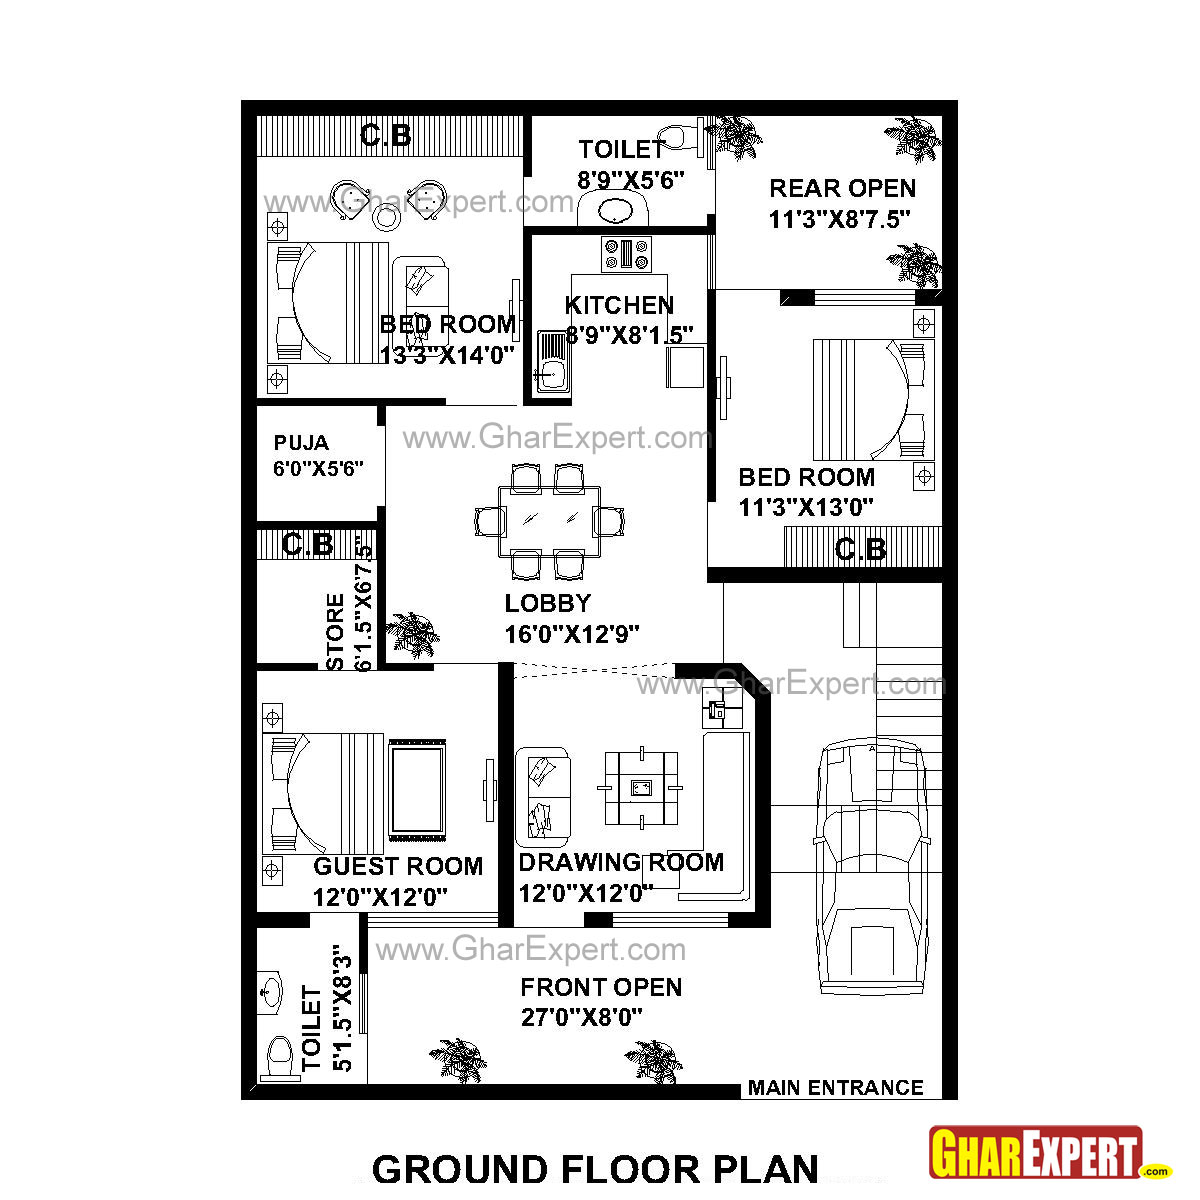 5e570aeb2f56fe5c Putz House Pattern Glitterhouse Patterns Printable together with Plan For 24 Feet By 56 Feet Plot  Plot Size 149 Square Yards  Plan Code 1458 further 86107c3675c0204f 40 X 80 Feet House Plan moreover 30x60 Basement Floor Plan further House Plans With Covered Decks How To Build A Covered Porch Concept. on 24 x 50 house plans